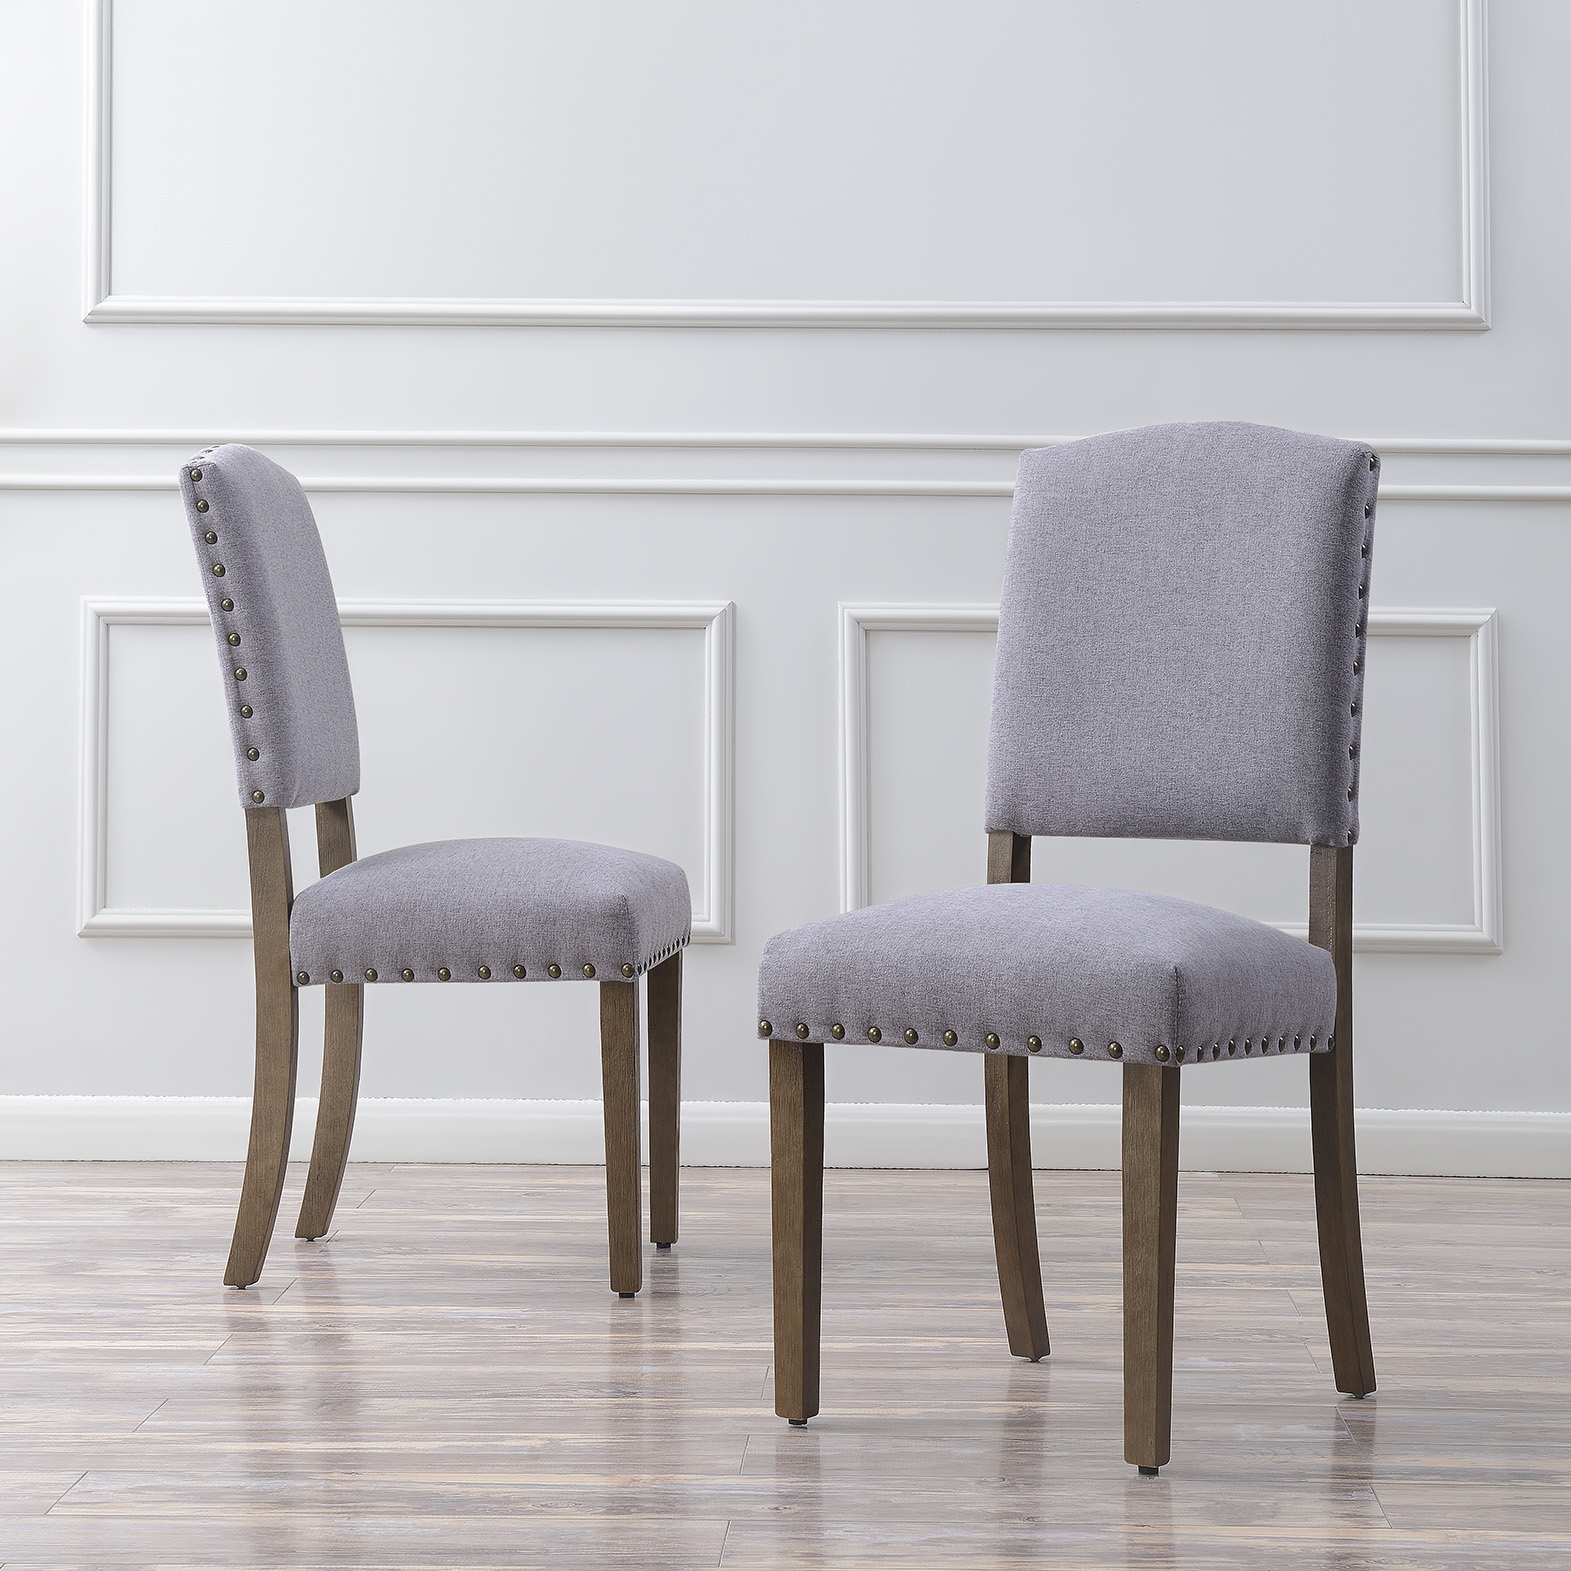 thumbnail 11 - Vintage Dining Chair Set of (2) Contemporary Extra Padded Cushion Seat